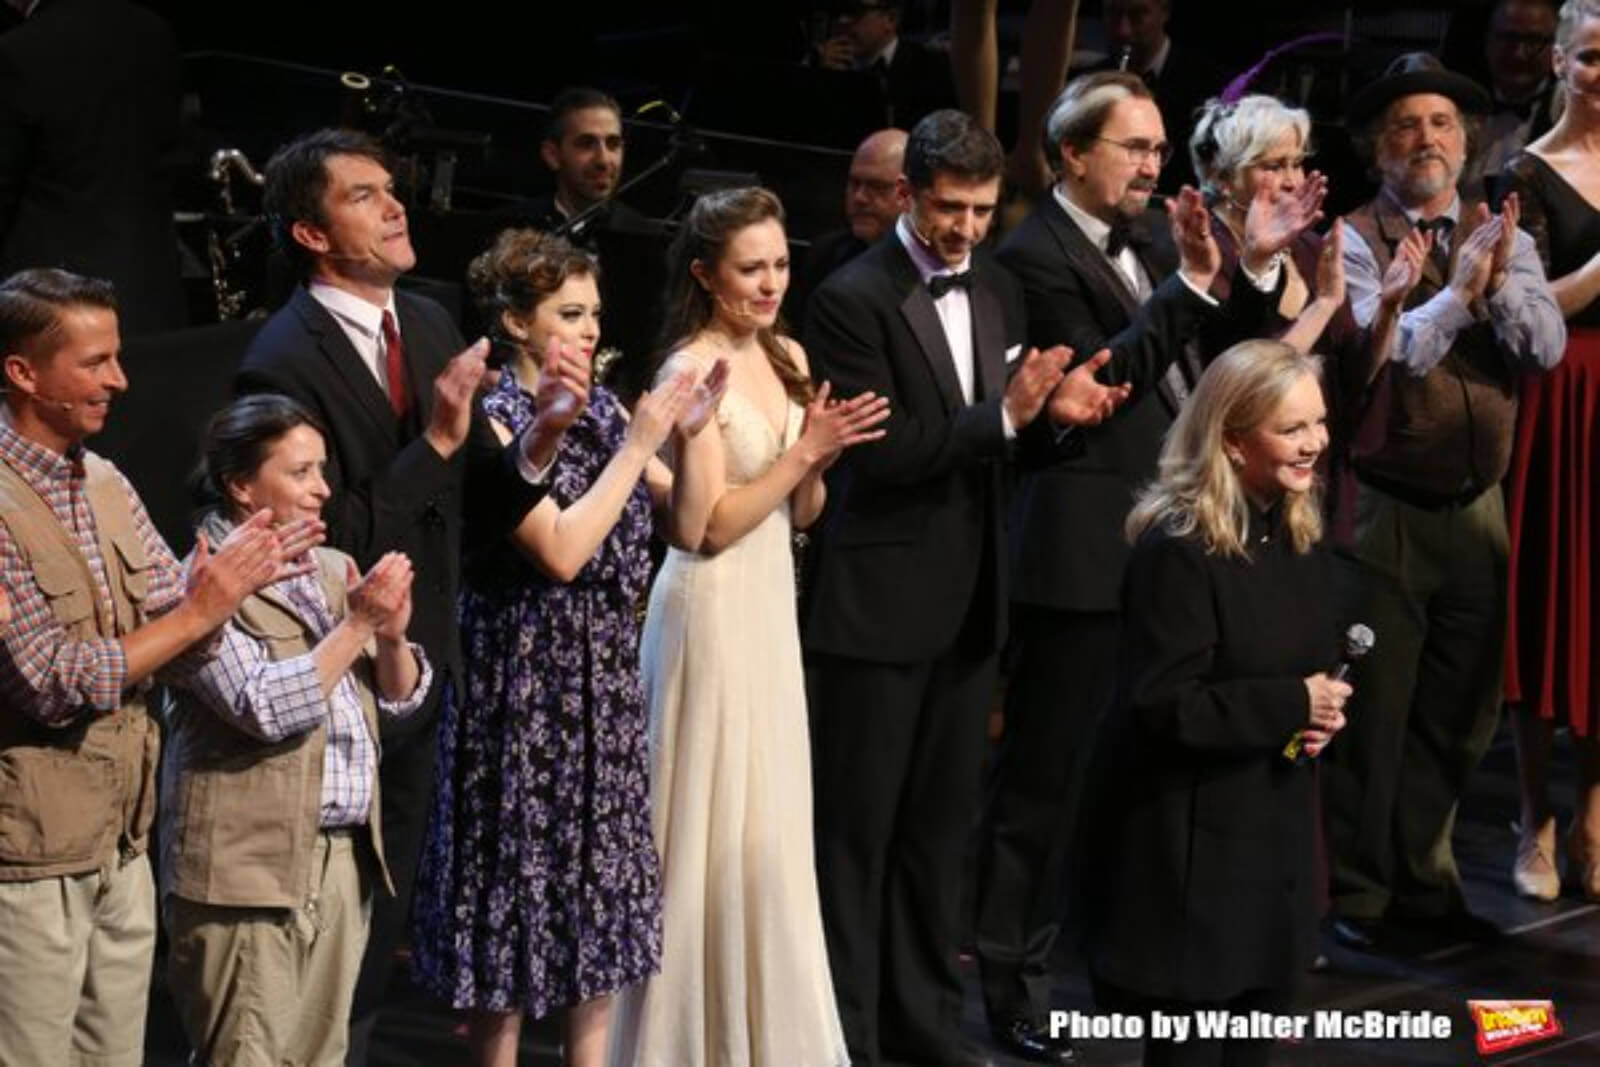 25th Anniversary Concert cast of Crazy for You with Susan Stroman.